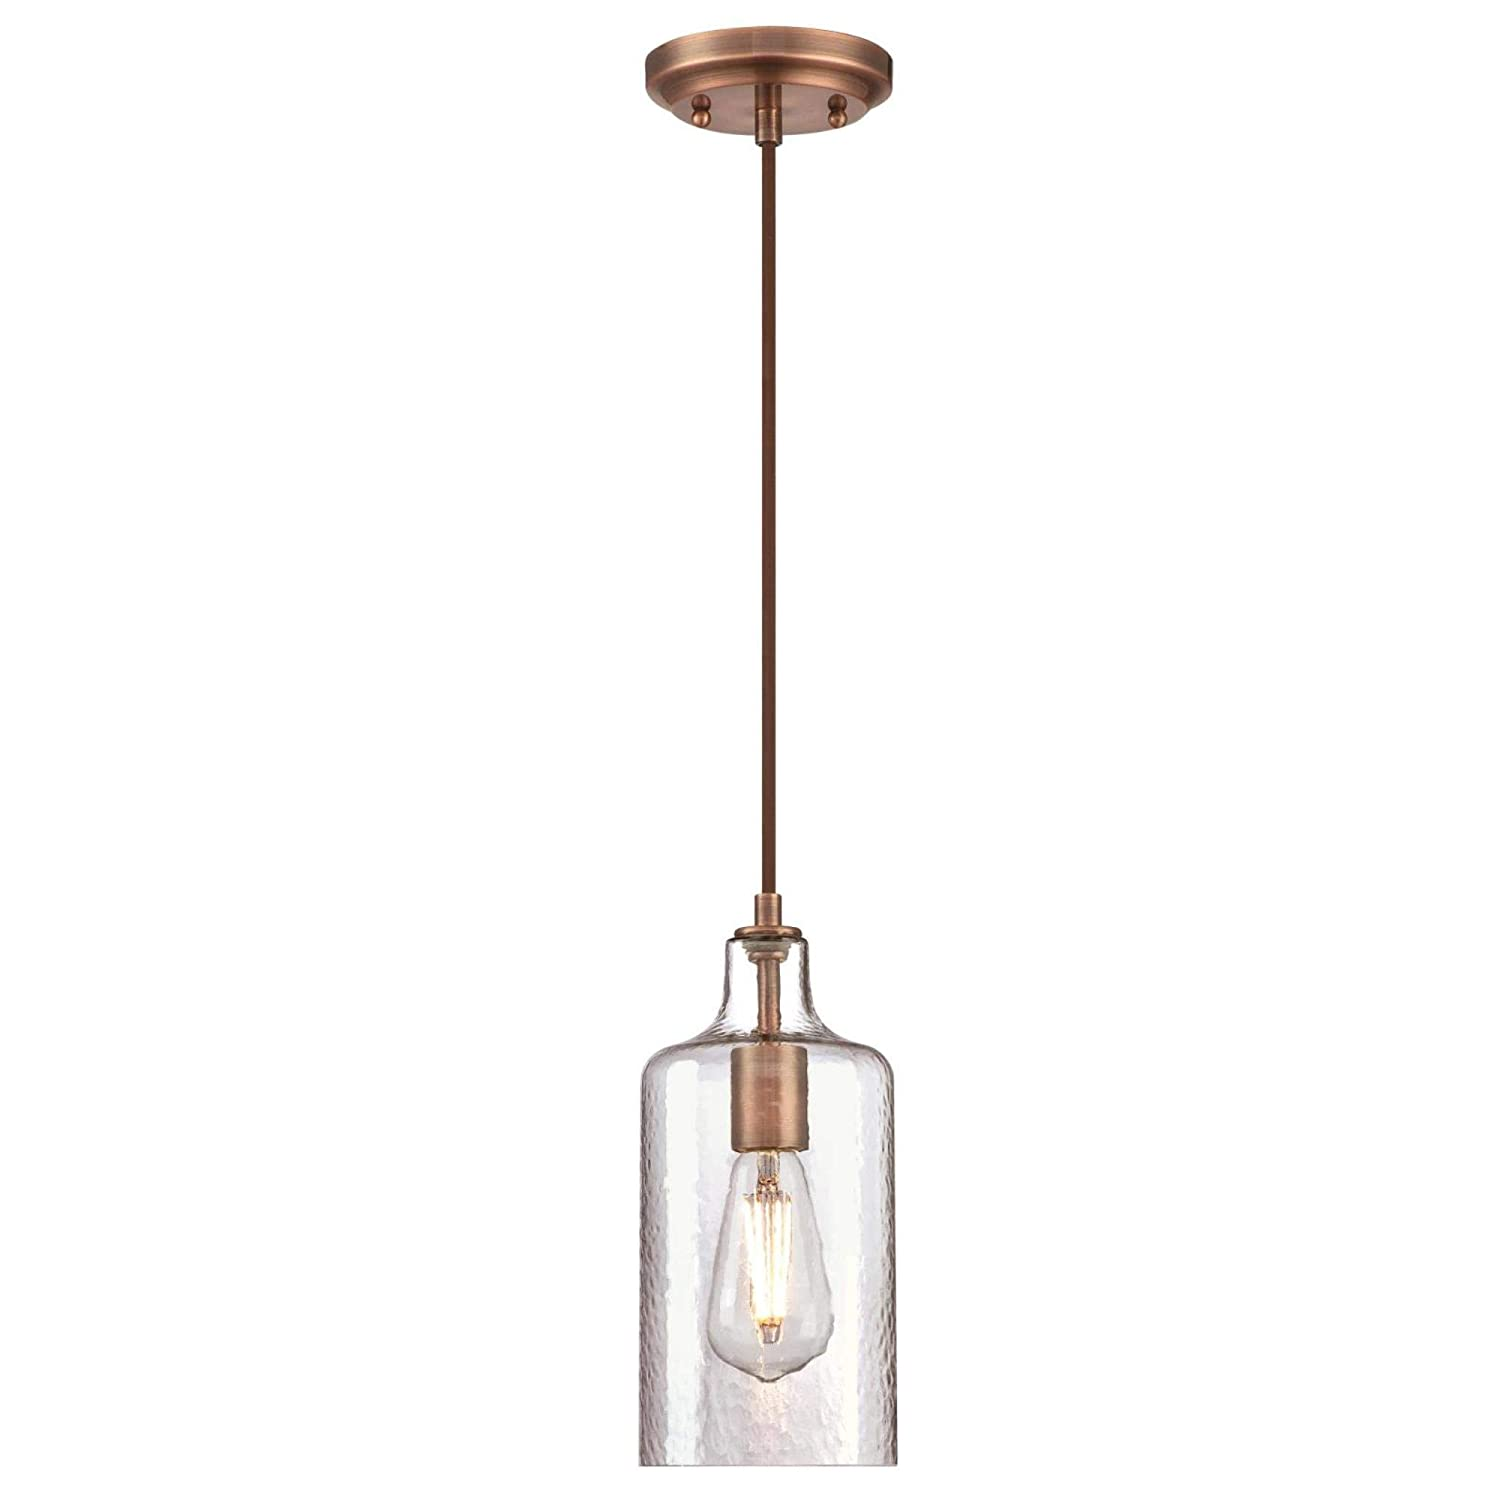 Westinghouse Lighting 6371500 One-Light Indoor Mini Pendant Light Washed Copper Finish with Clear Textured Glass